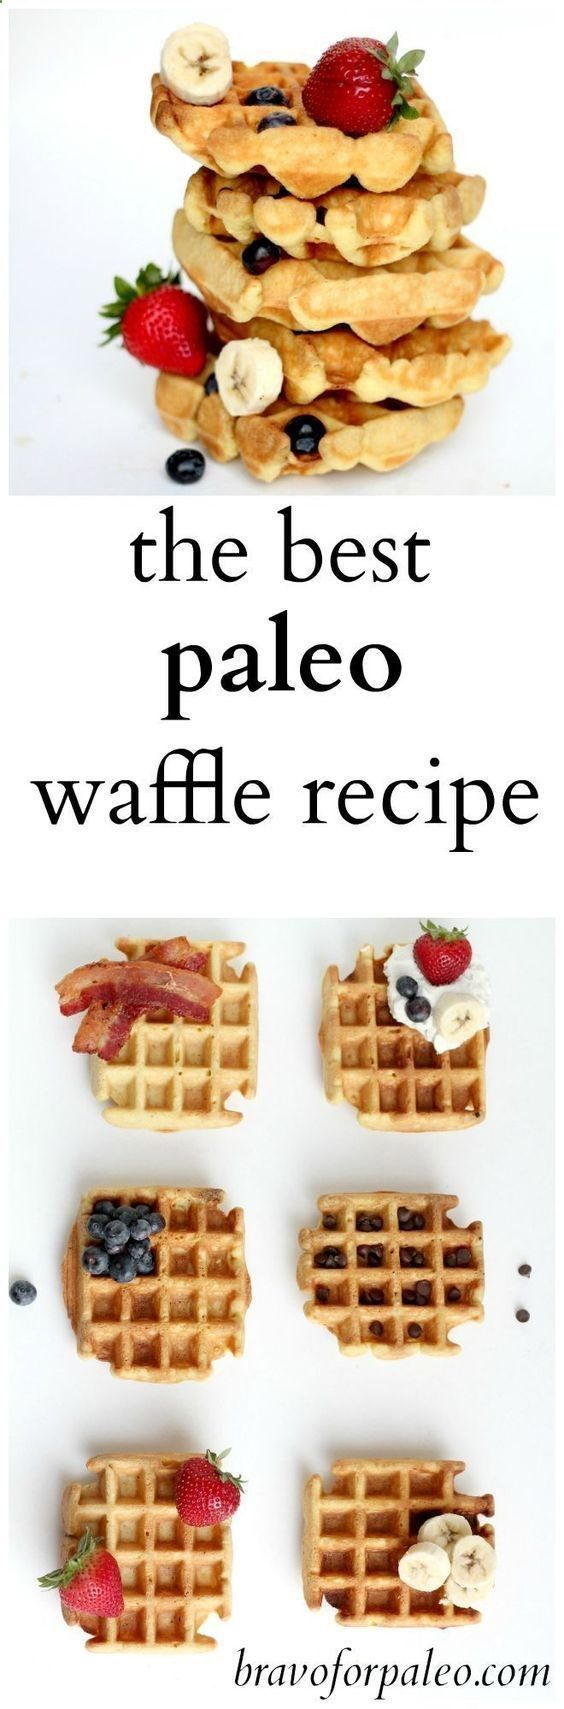 This is my FAVORITE gluten free, grain free, paleo waffle recipe! Use the coconut oil for this recipe to keep it clean eating friendly. Pin now to make this healthy breakfast recipe later.